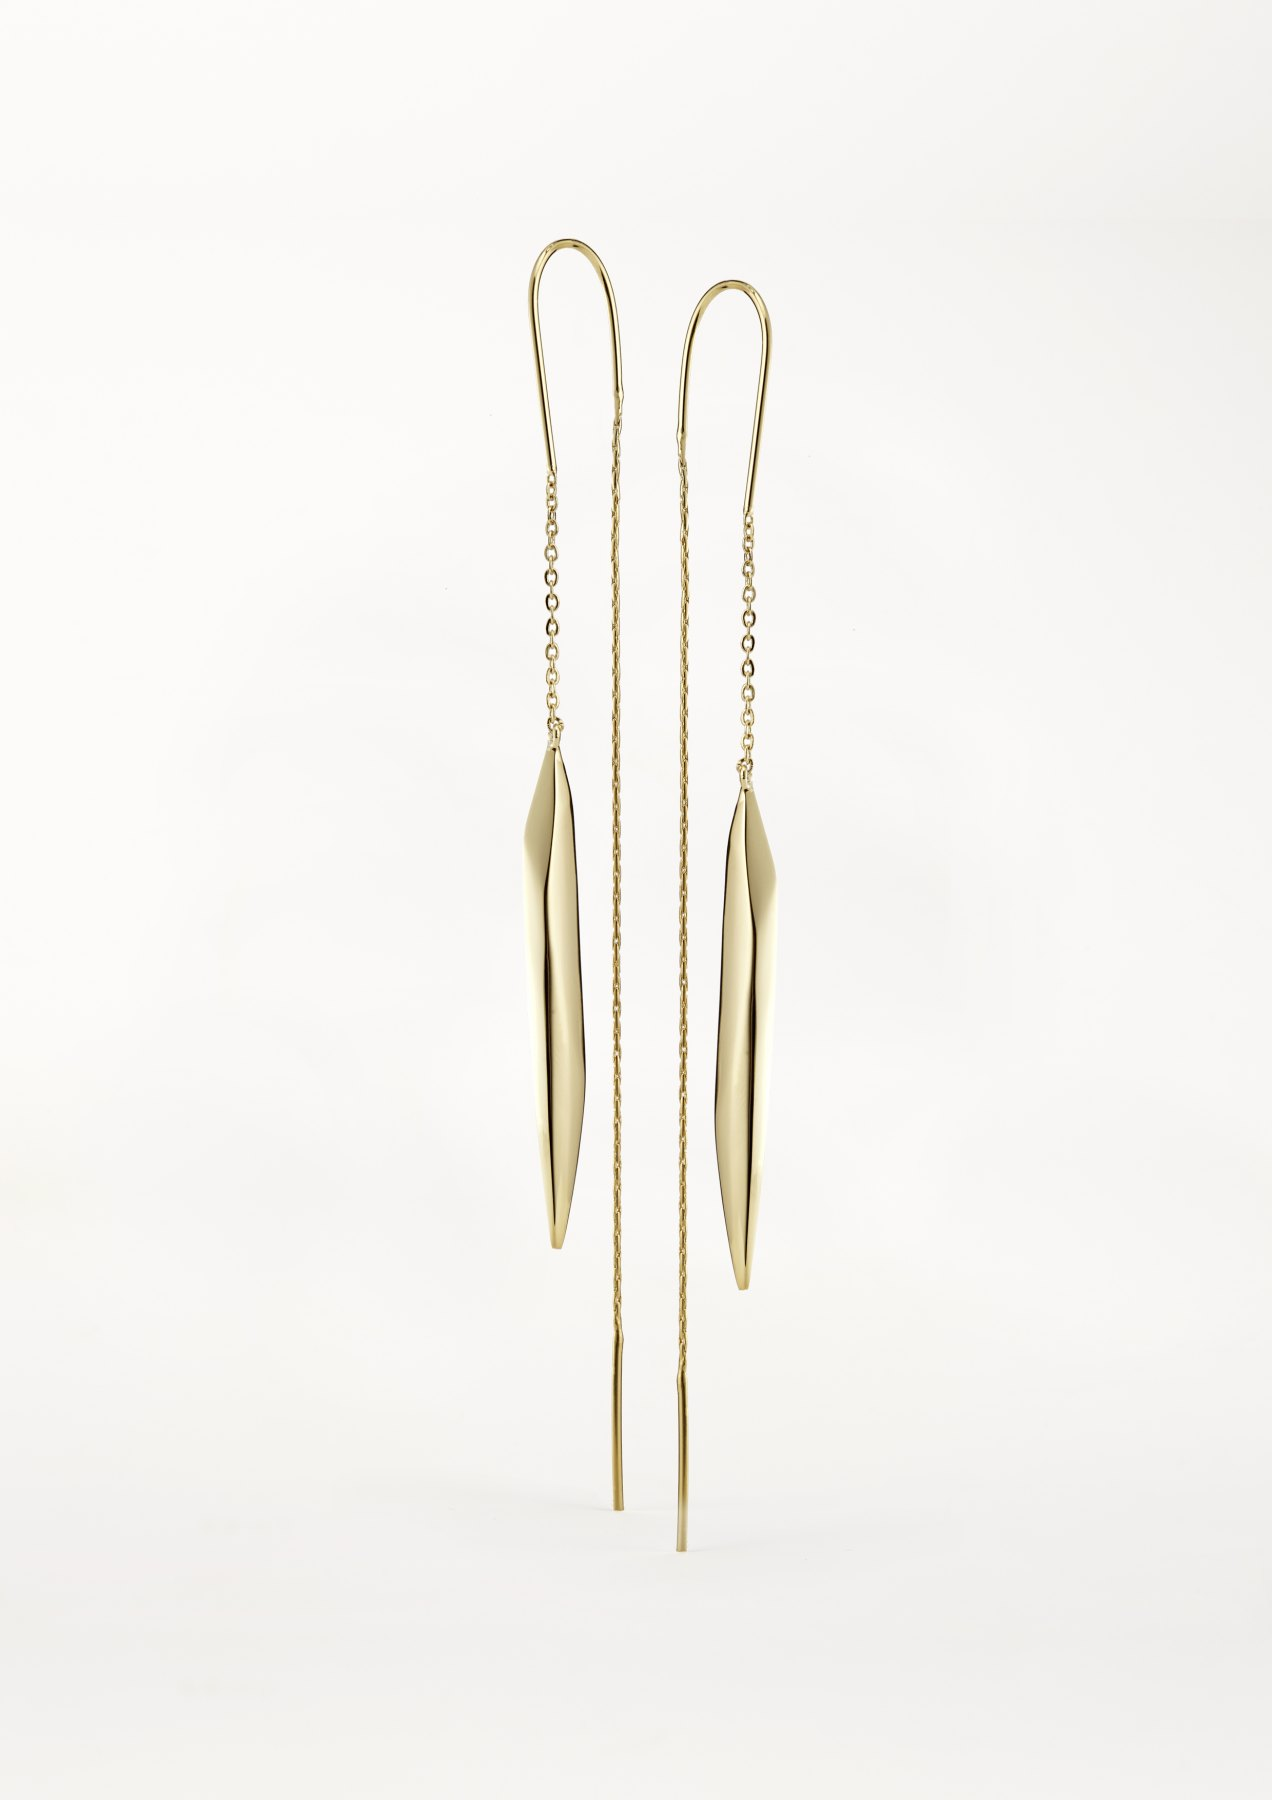 xenia bous jewellery washed stone 03 falling icicle earrings gold silver